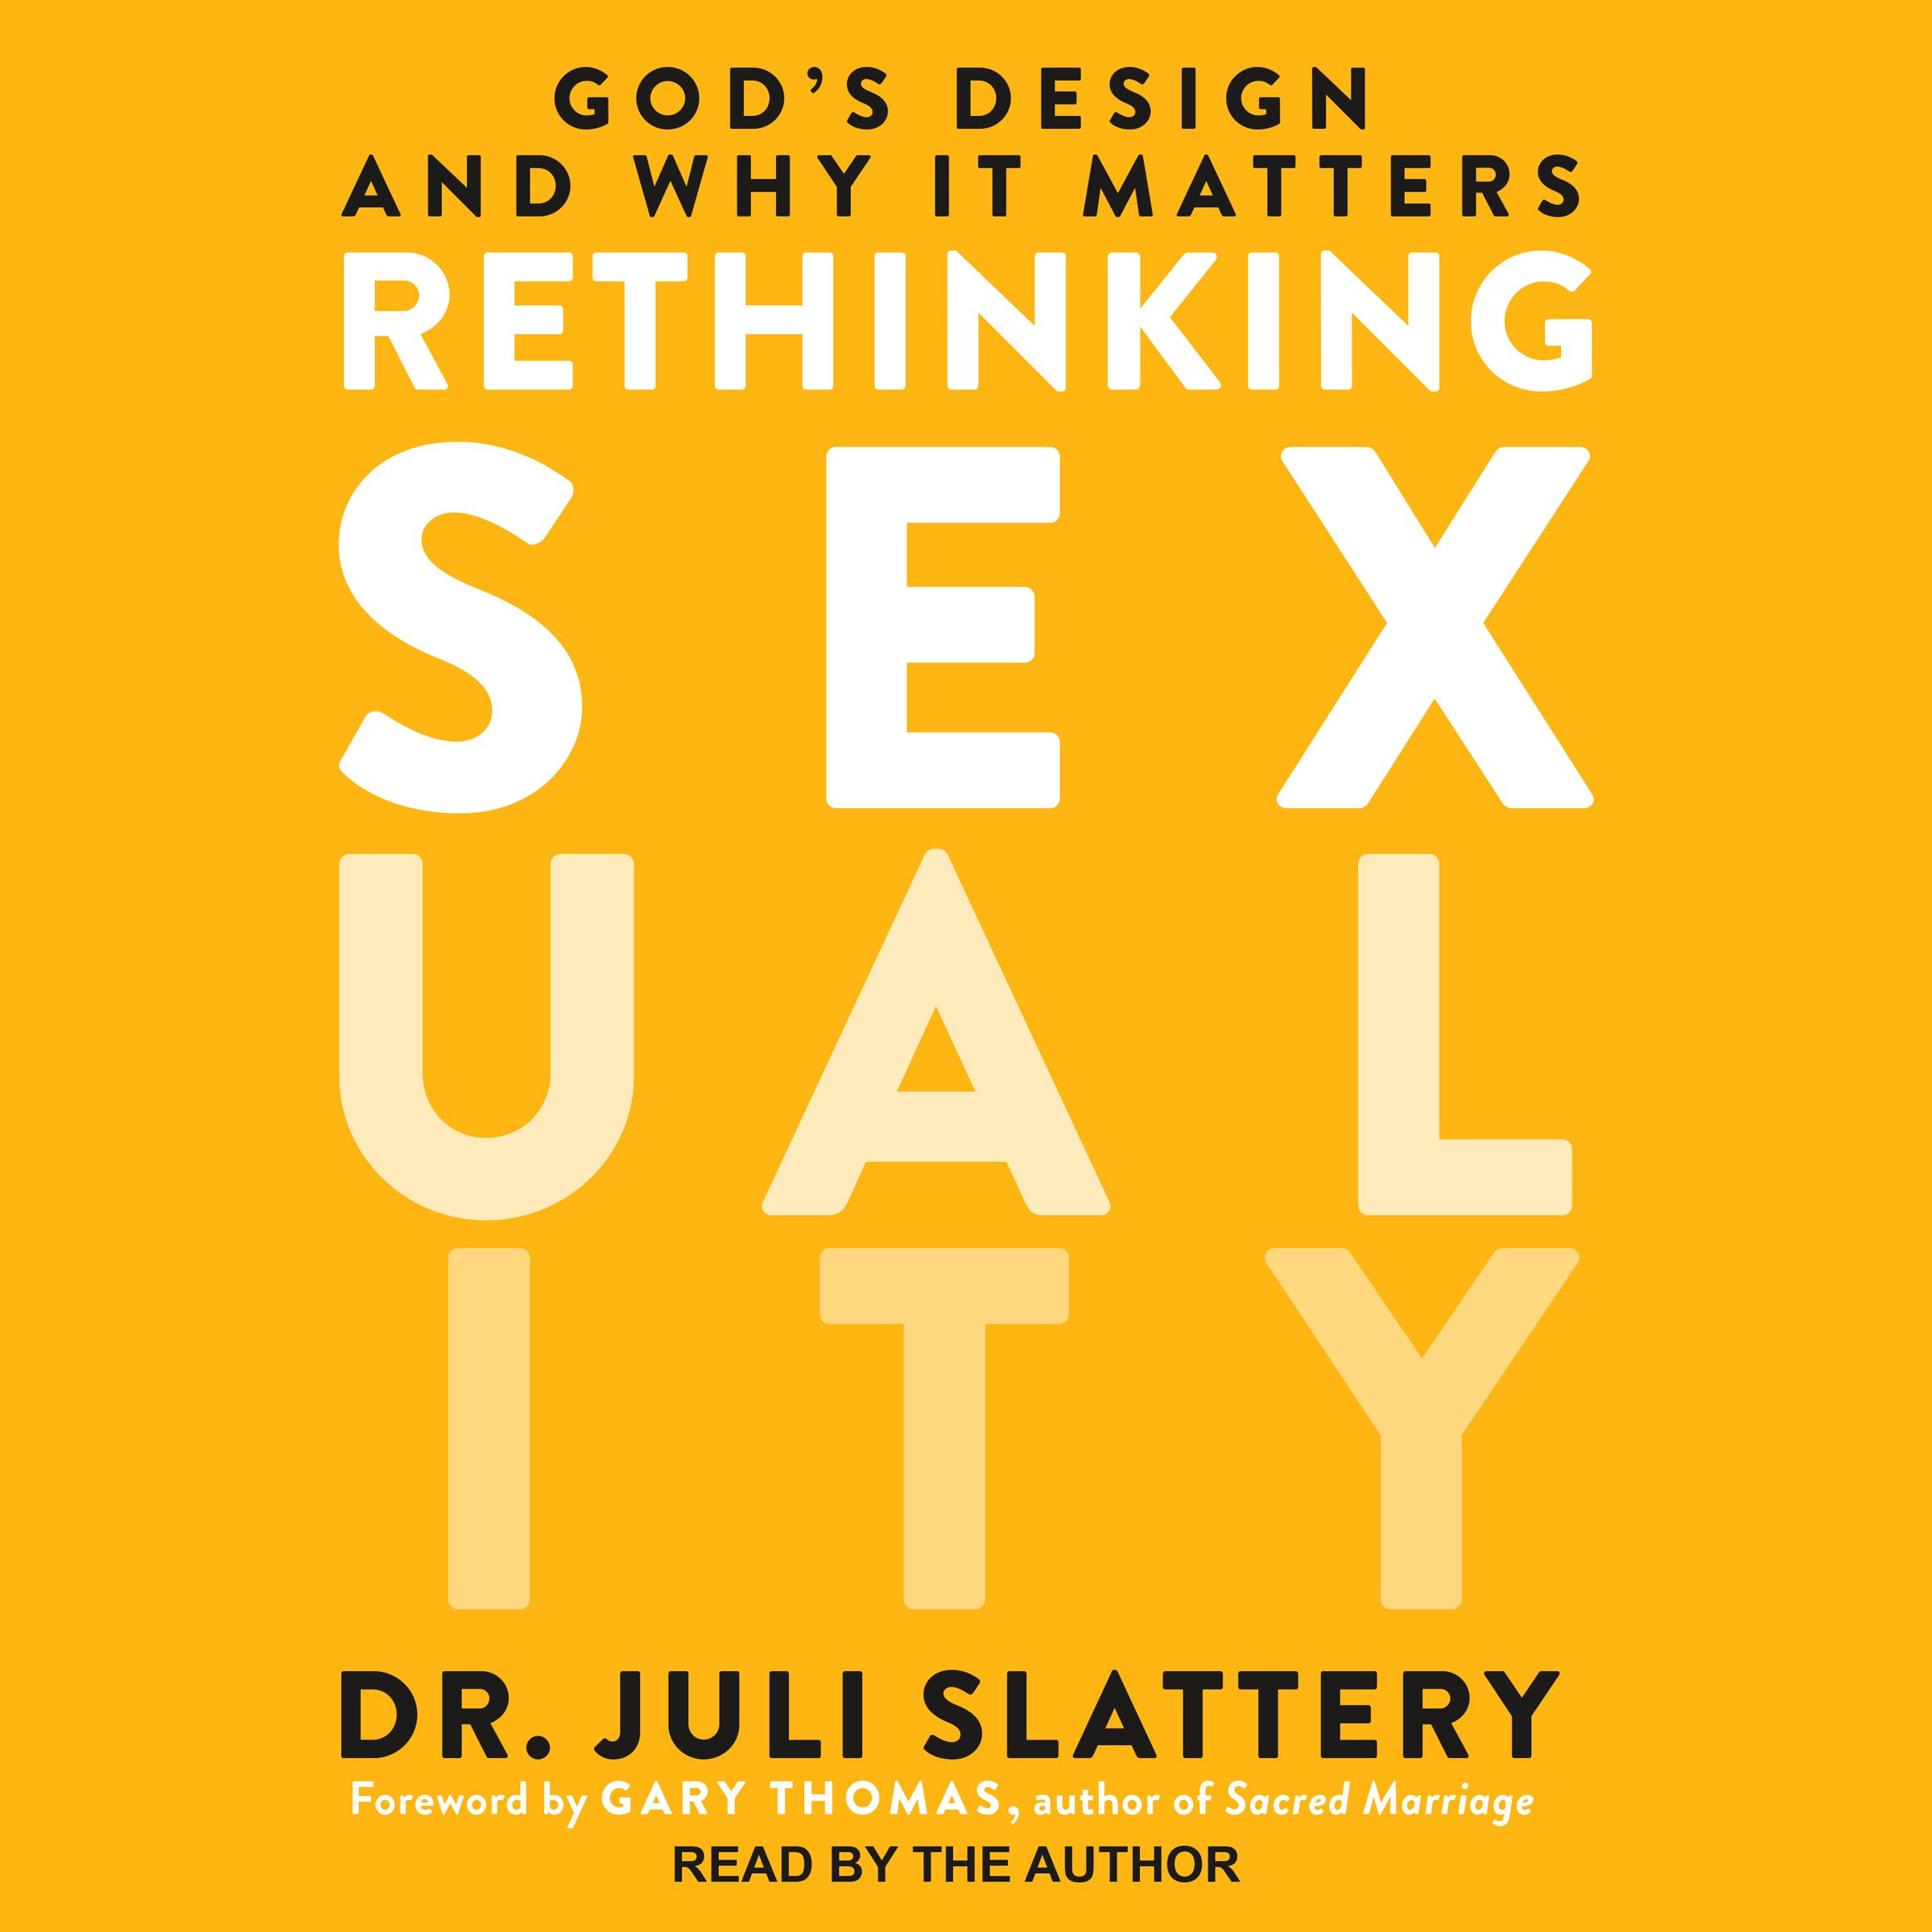 Rethinking Sexuality: God's Design and Why It Matters